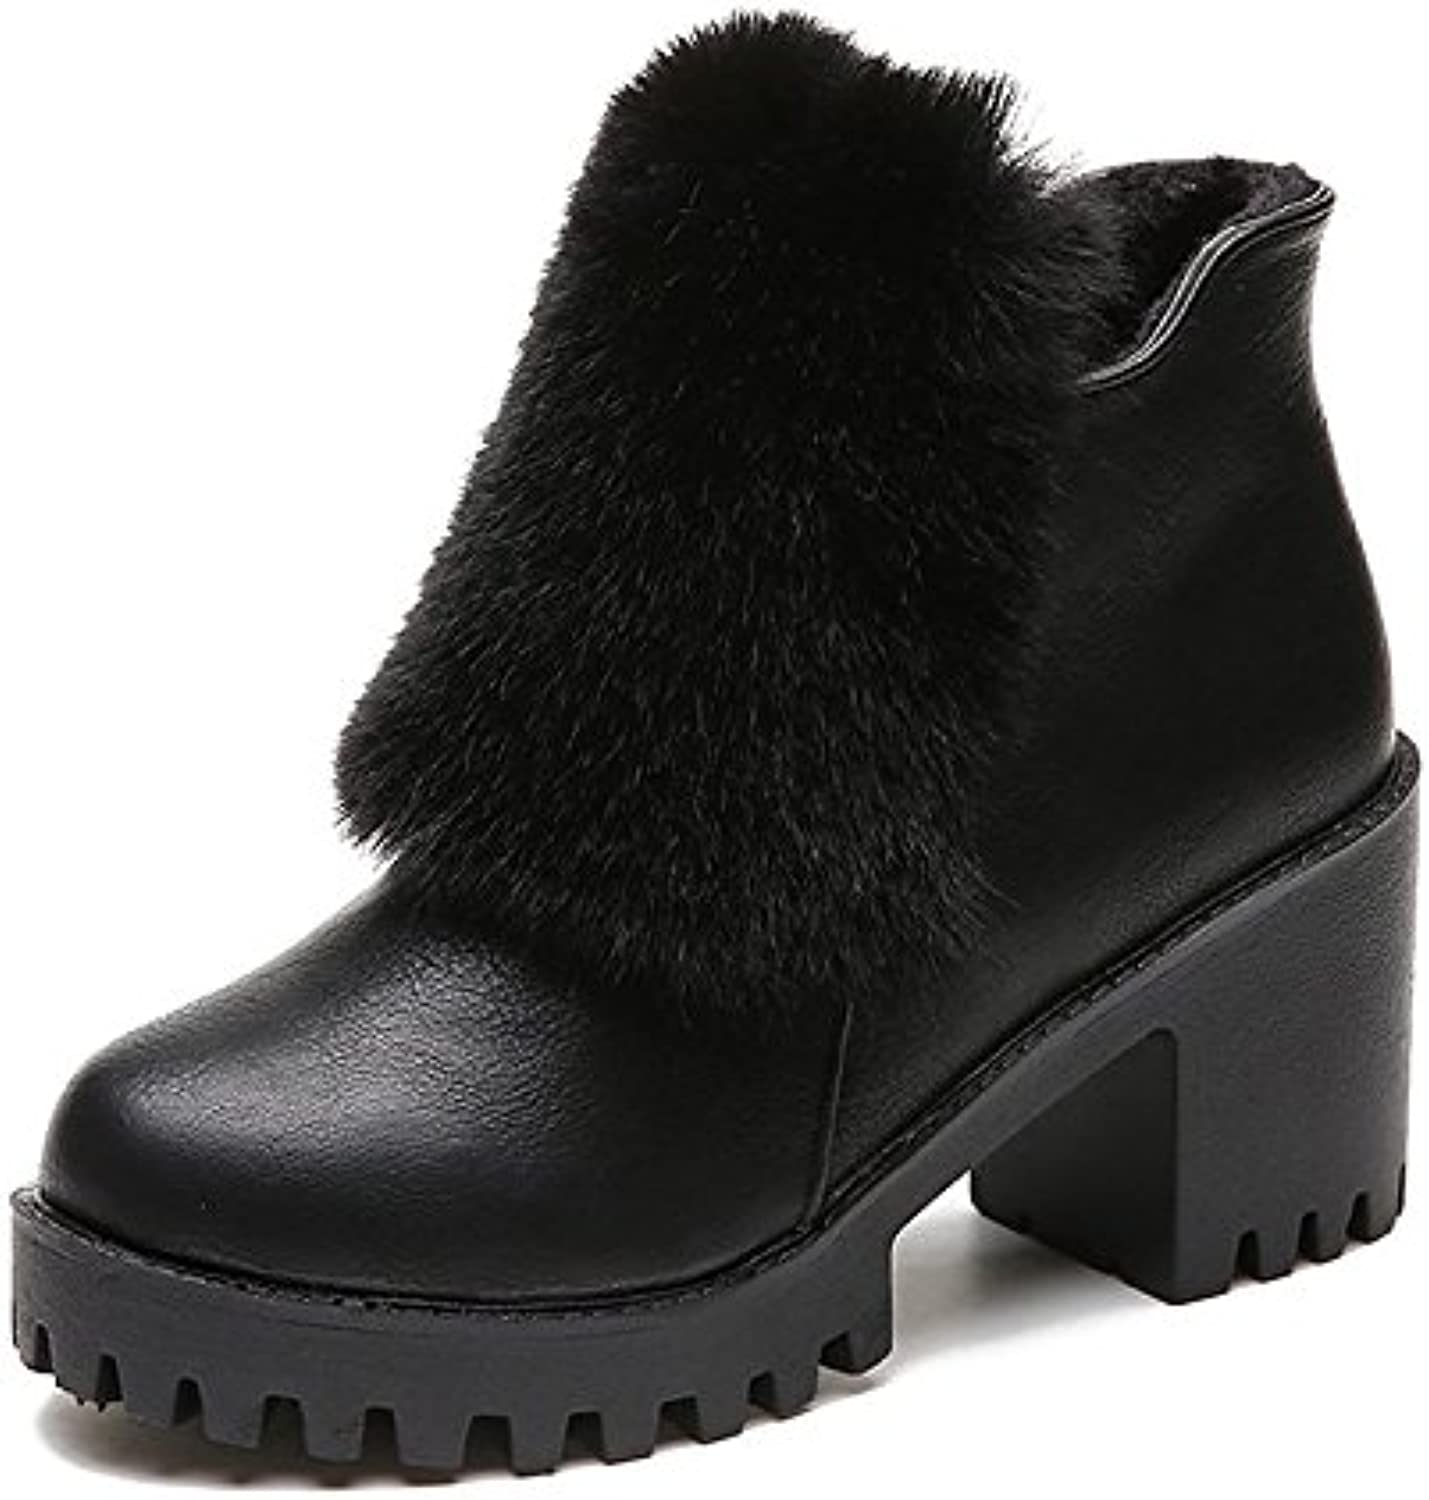 HSXZ Women's shoes PU Winter Fall Comfort Fashion Boots Boots Chunky Heel Round Toe for Casual Black